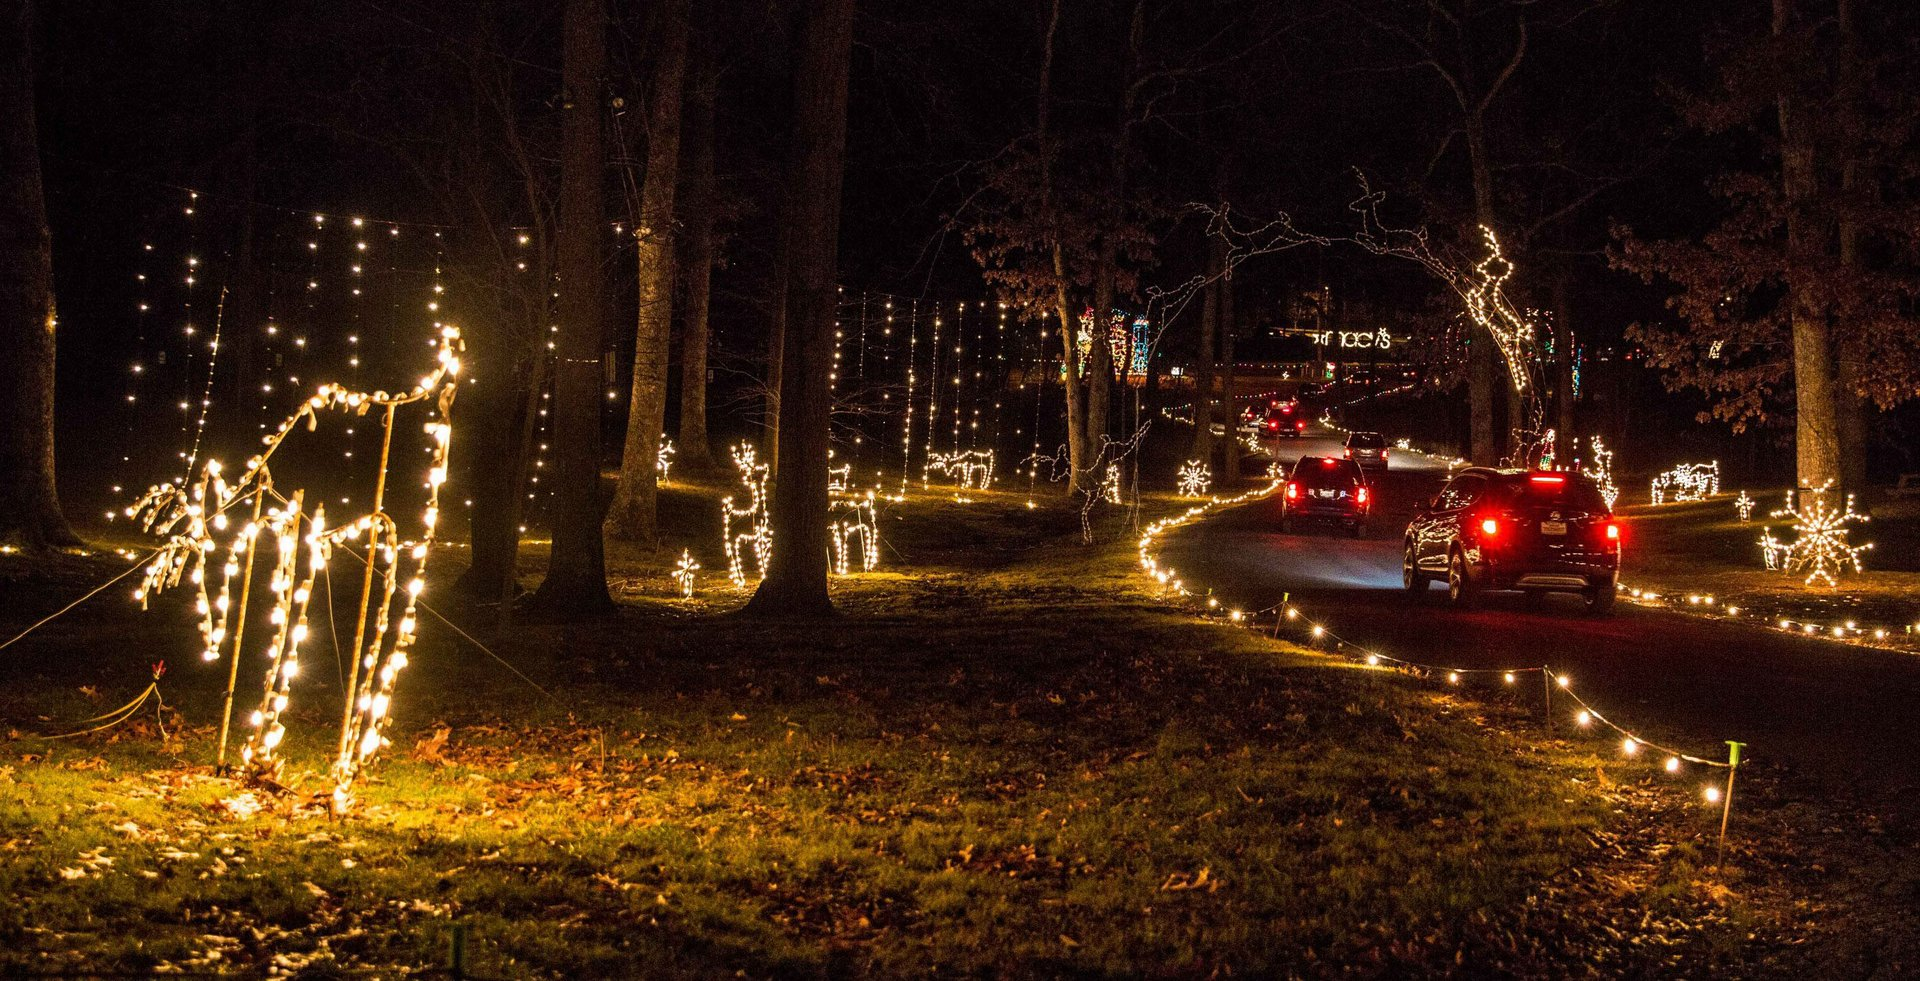 Merriweather Symphony of Lights in Maryland - Best Season 2020